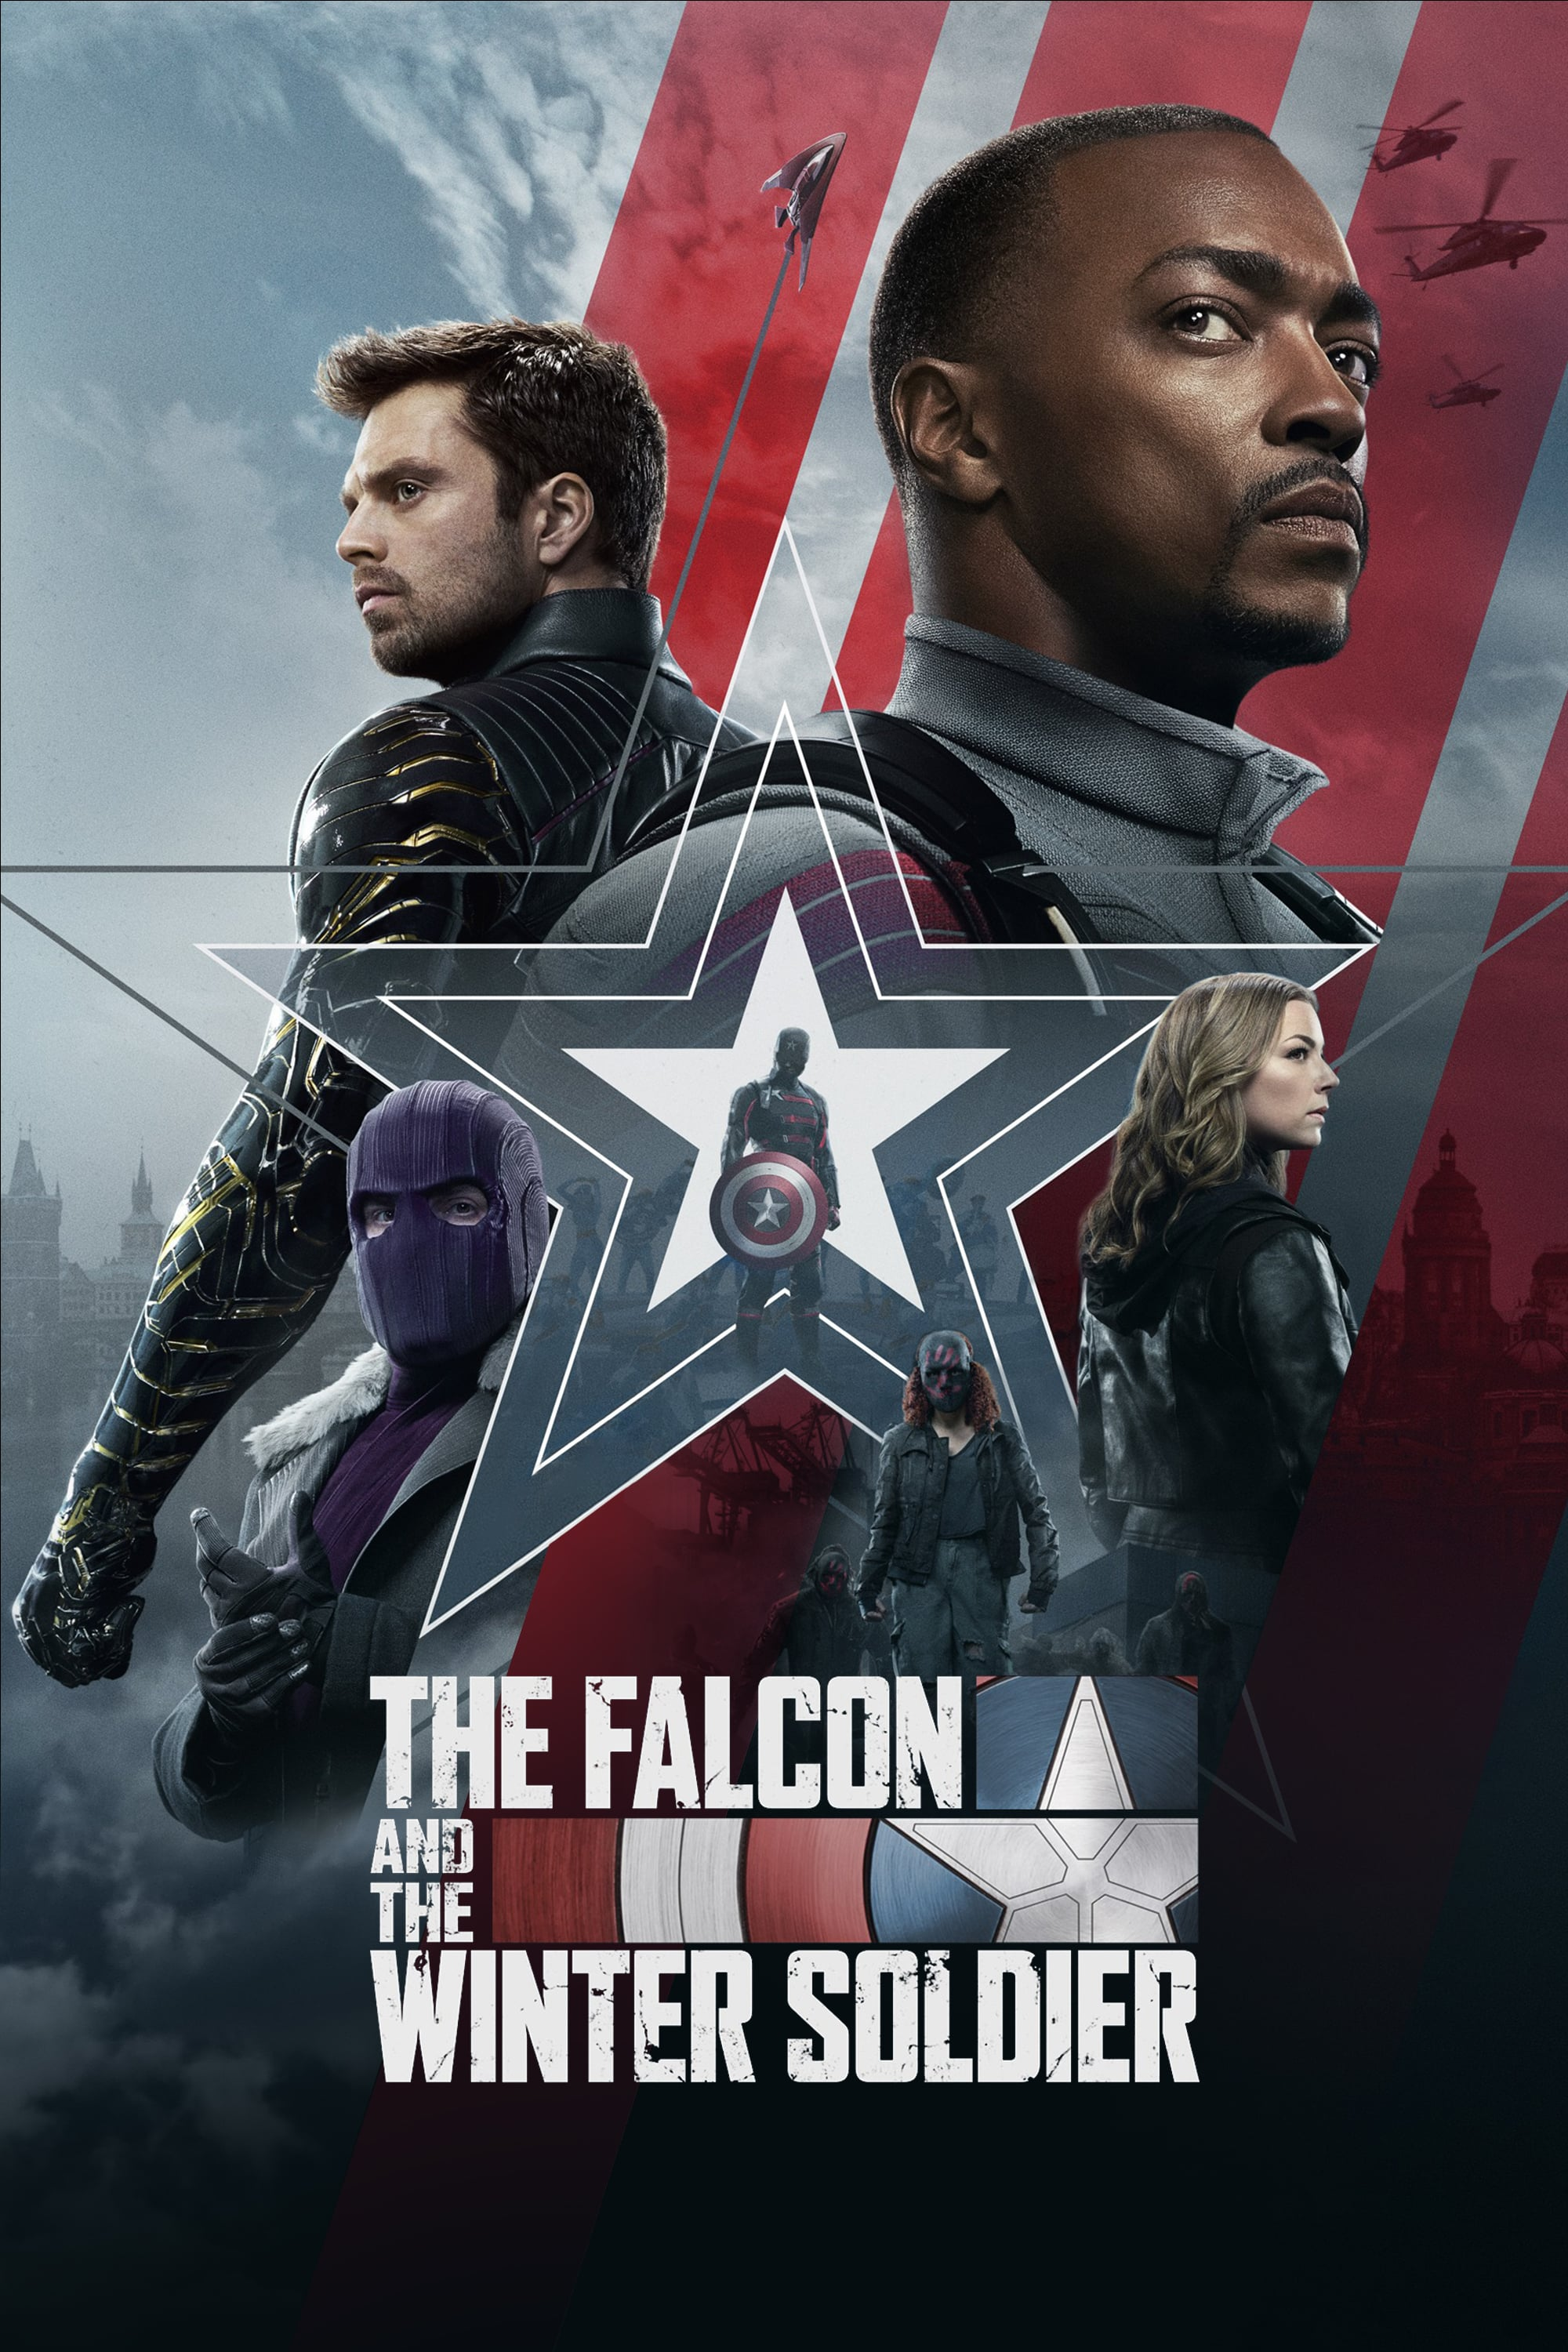 Poster; The Falcon and the Winter Soldier